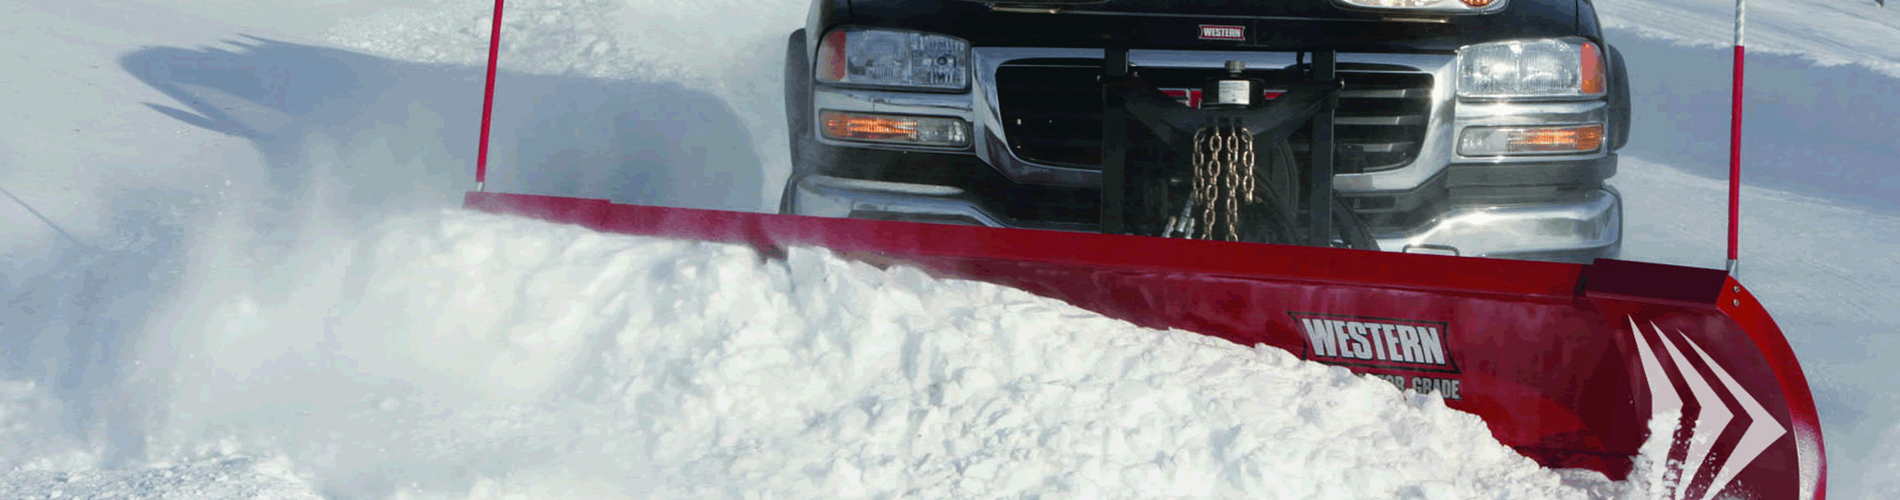 snow removal header